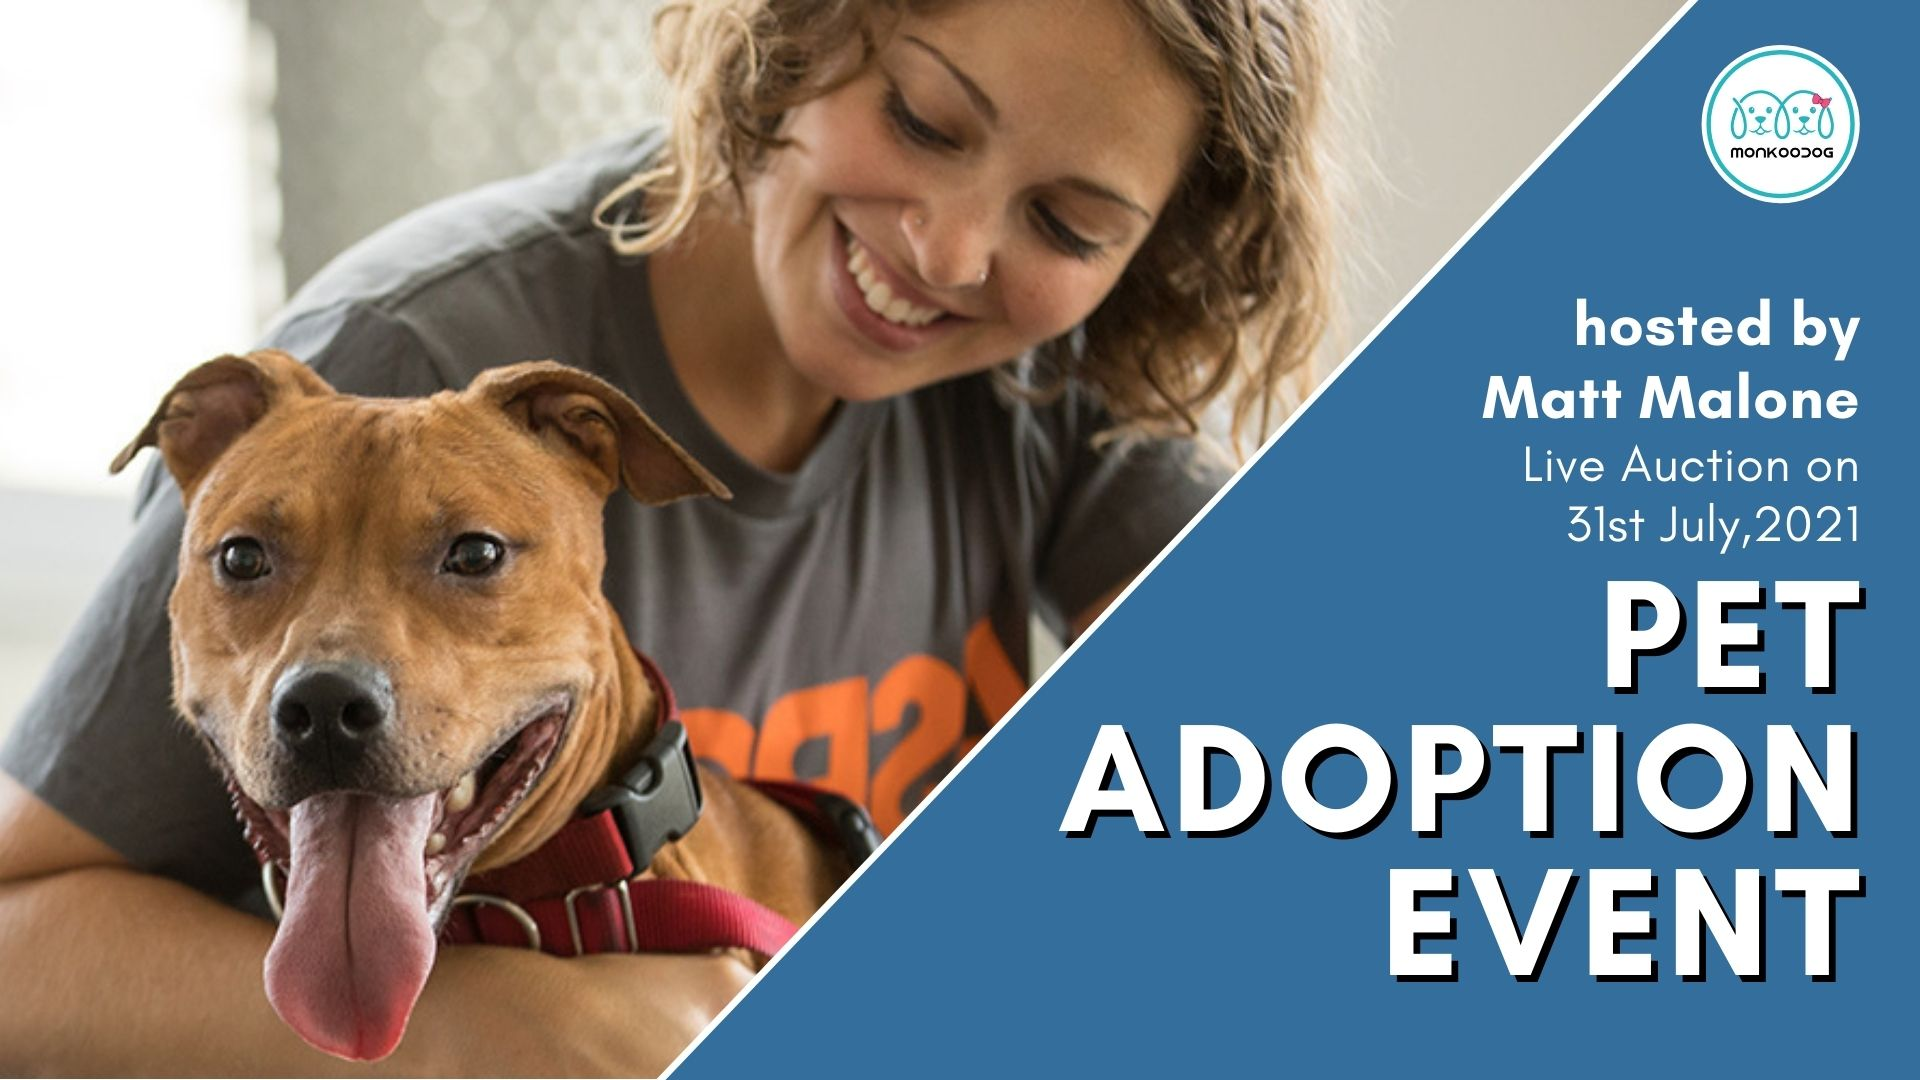 Pet Adoption Event With a Day of Outdoor Fun and Music.